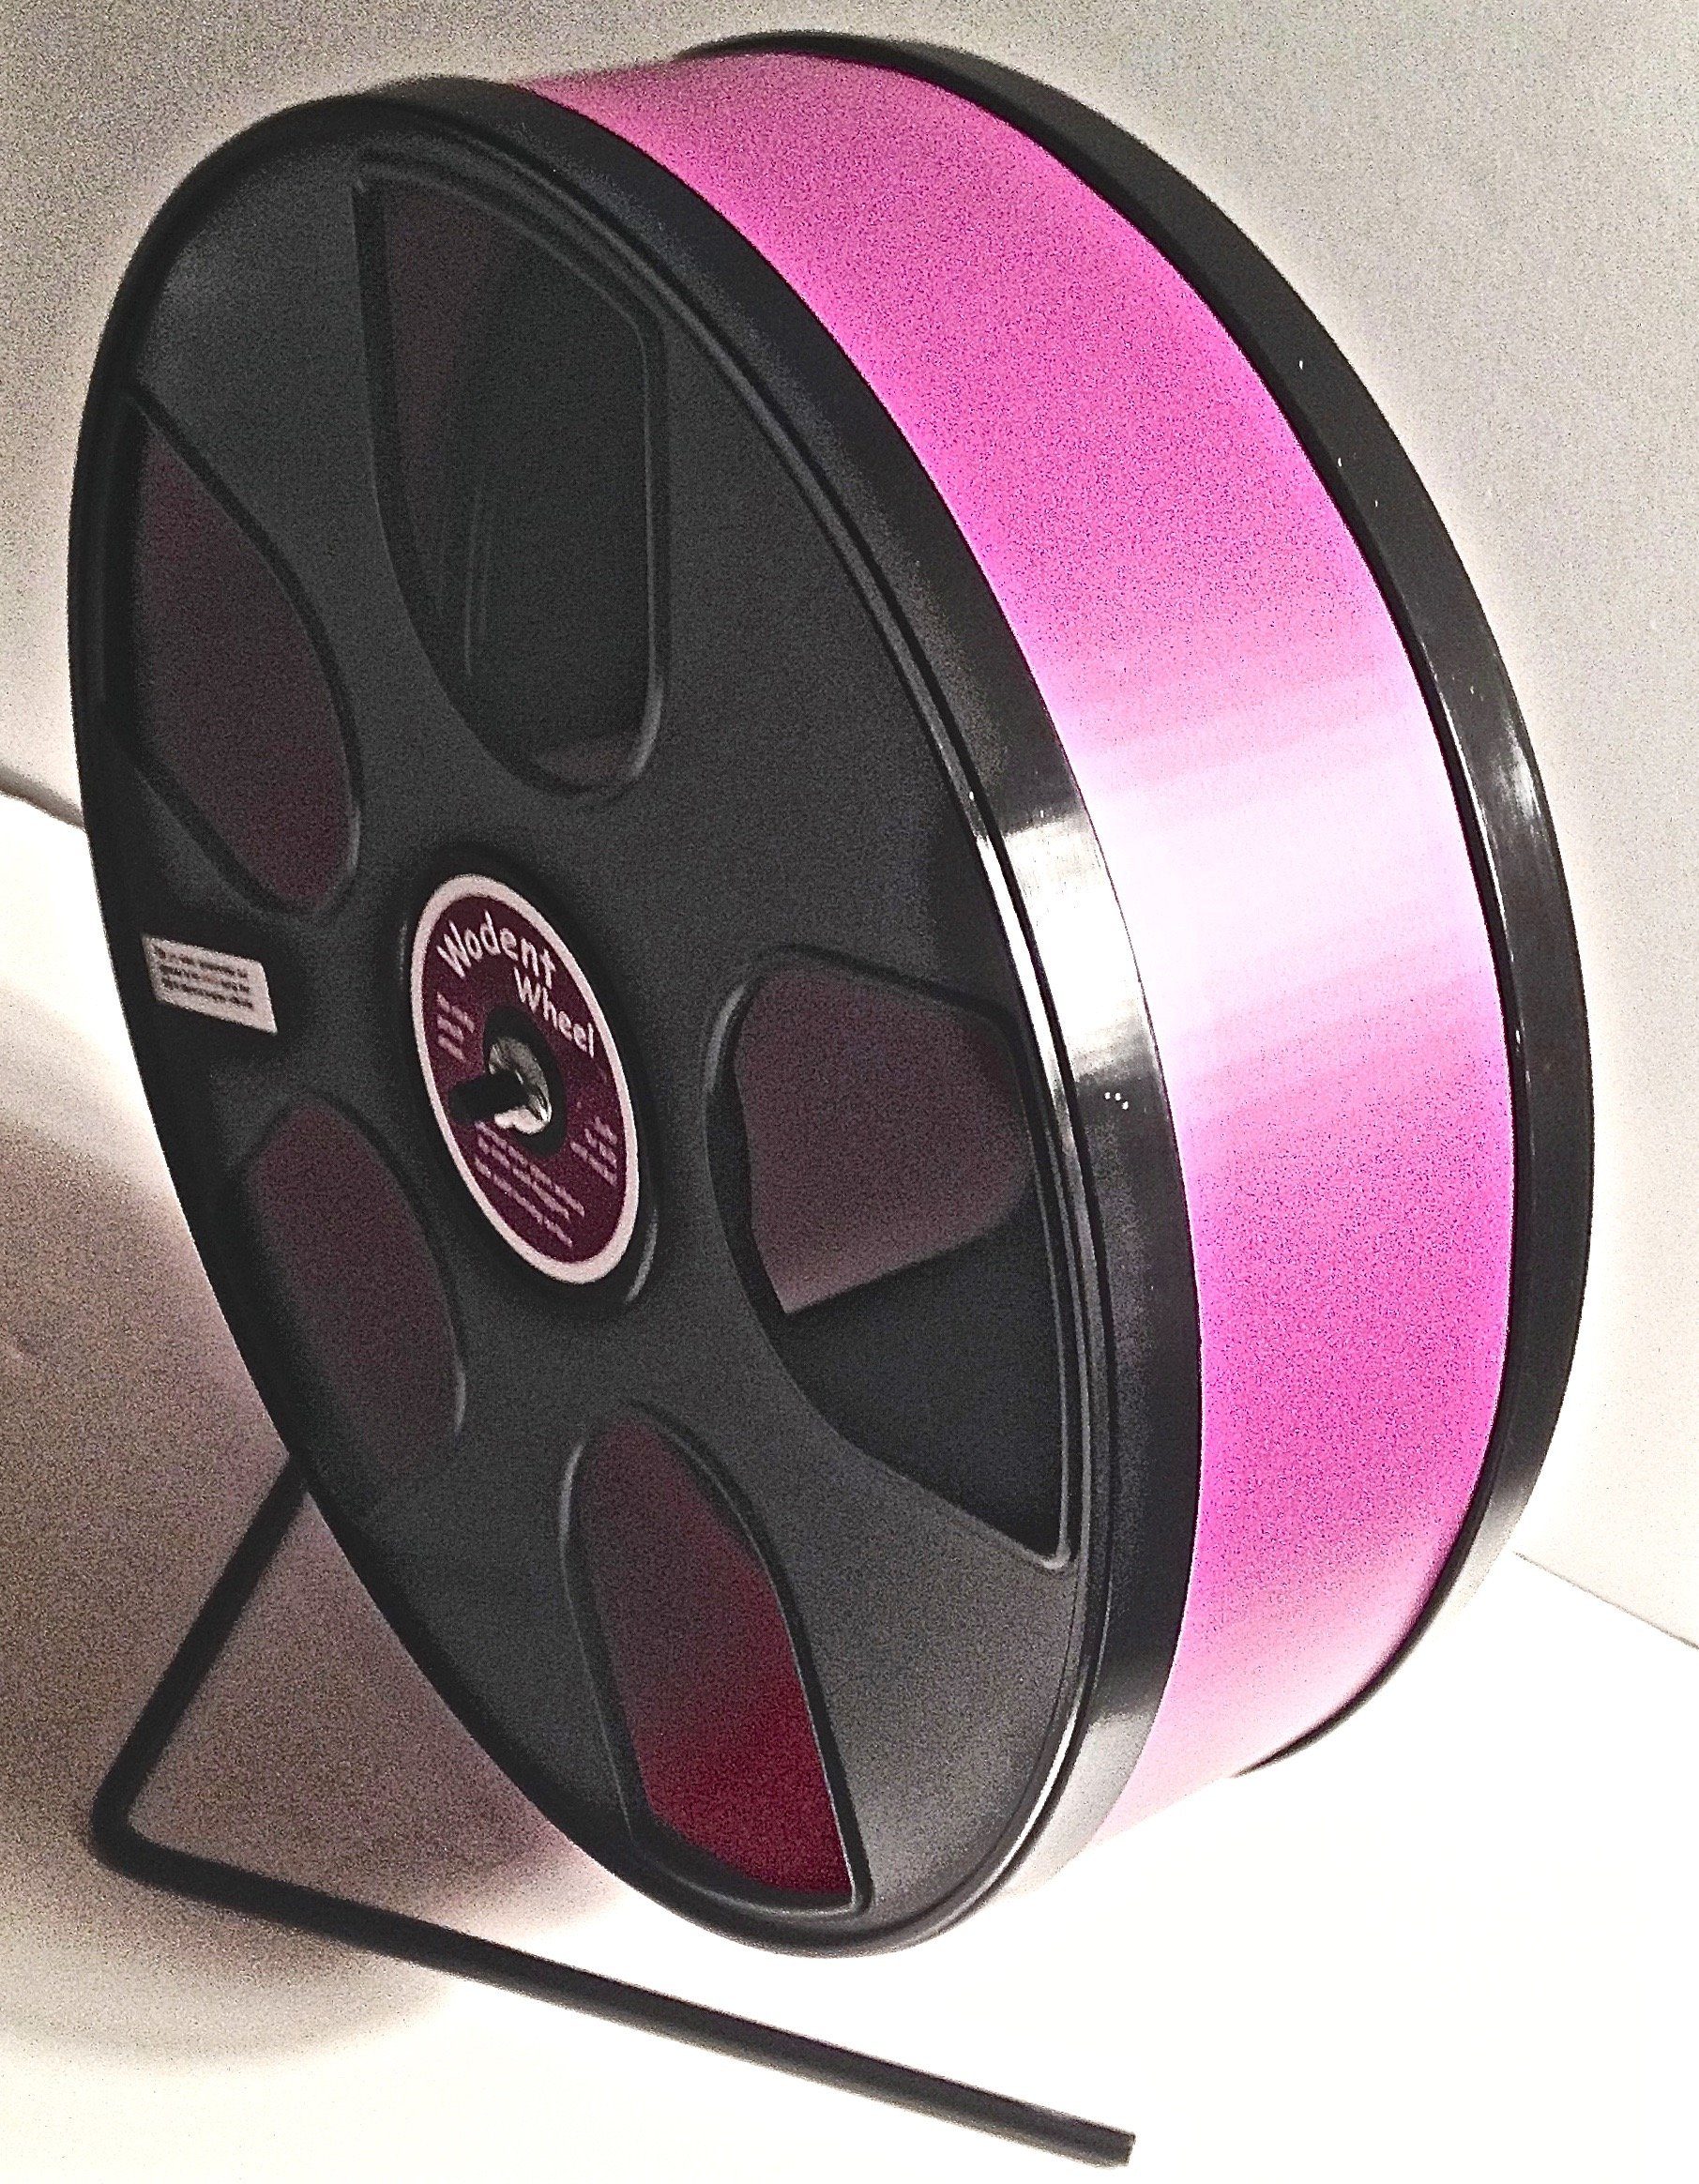 SUGAR GLIDER/SMALL PET 11'' DIAMETER EXERCISE WHEEL- BLACK PANELS WITH BURGUNDY TRACK